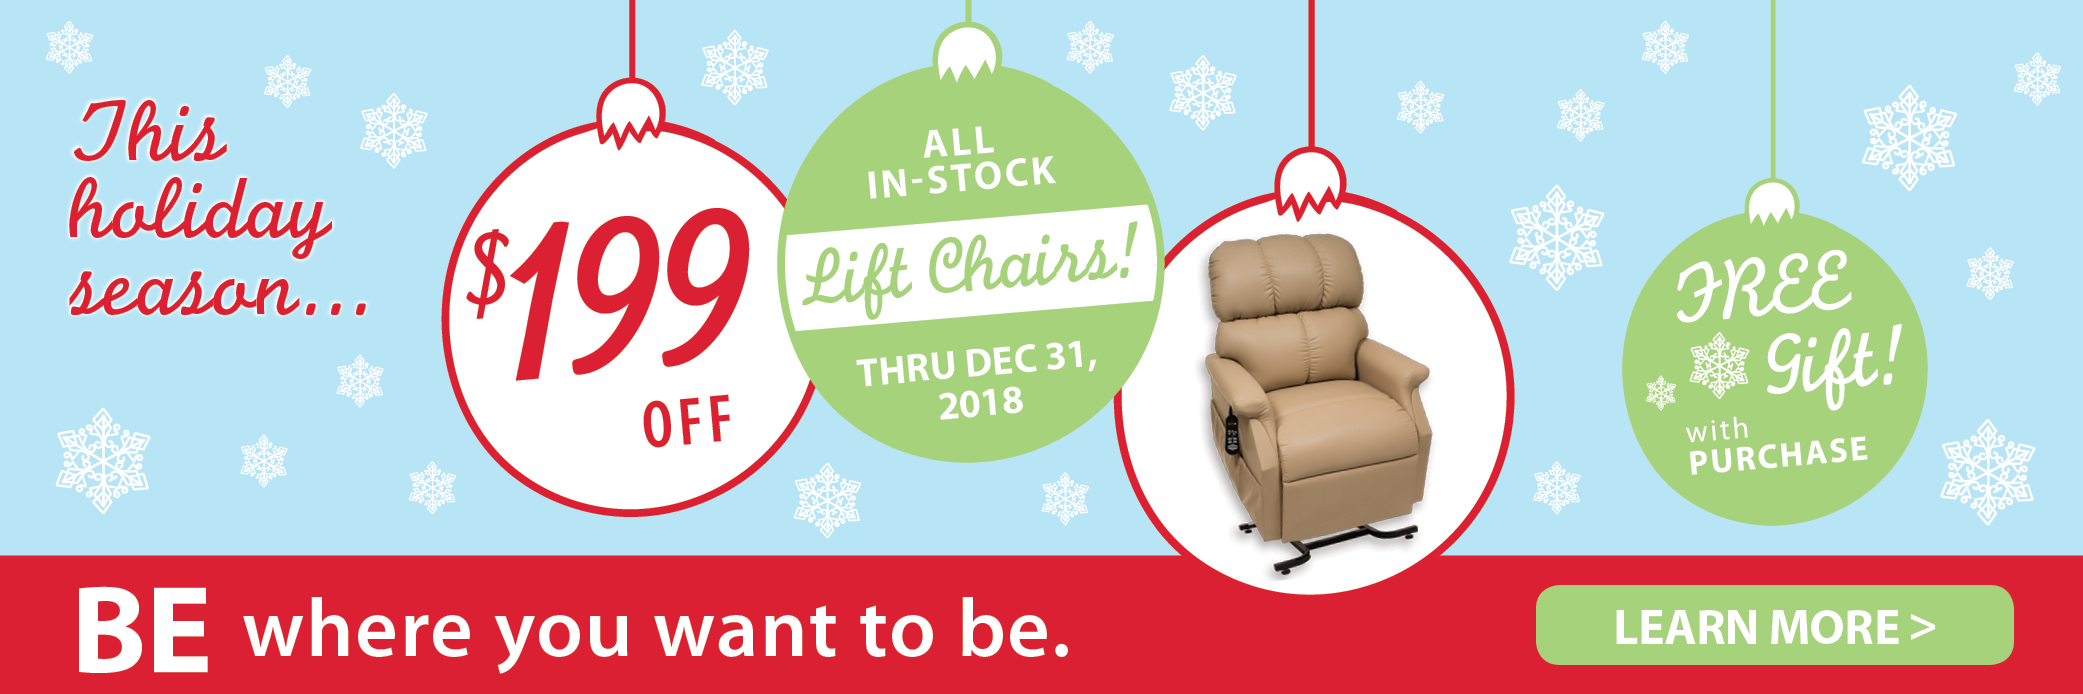 $199 off all in-stock lift chairs through Dec. 31, 2018!